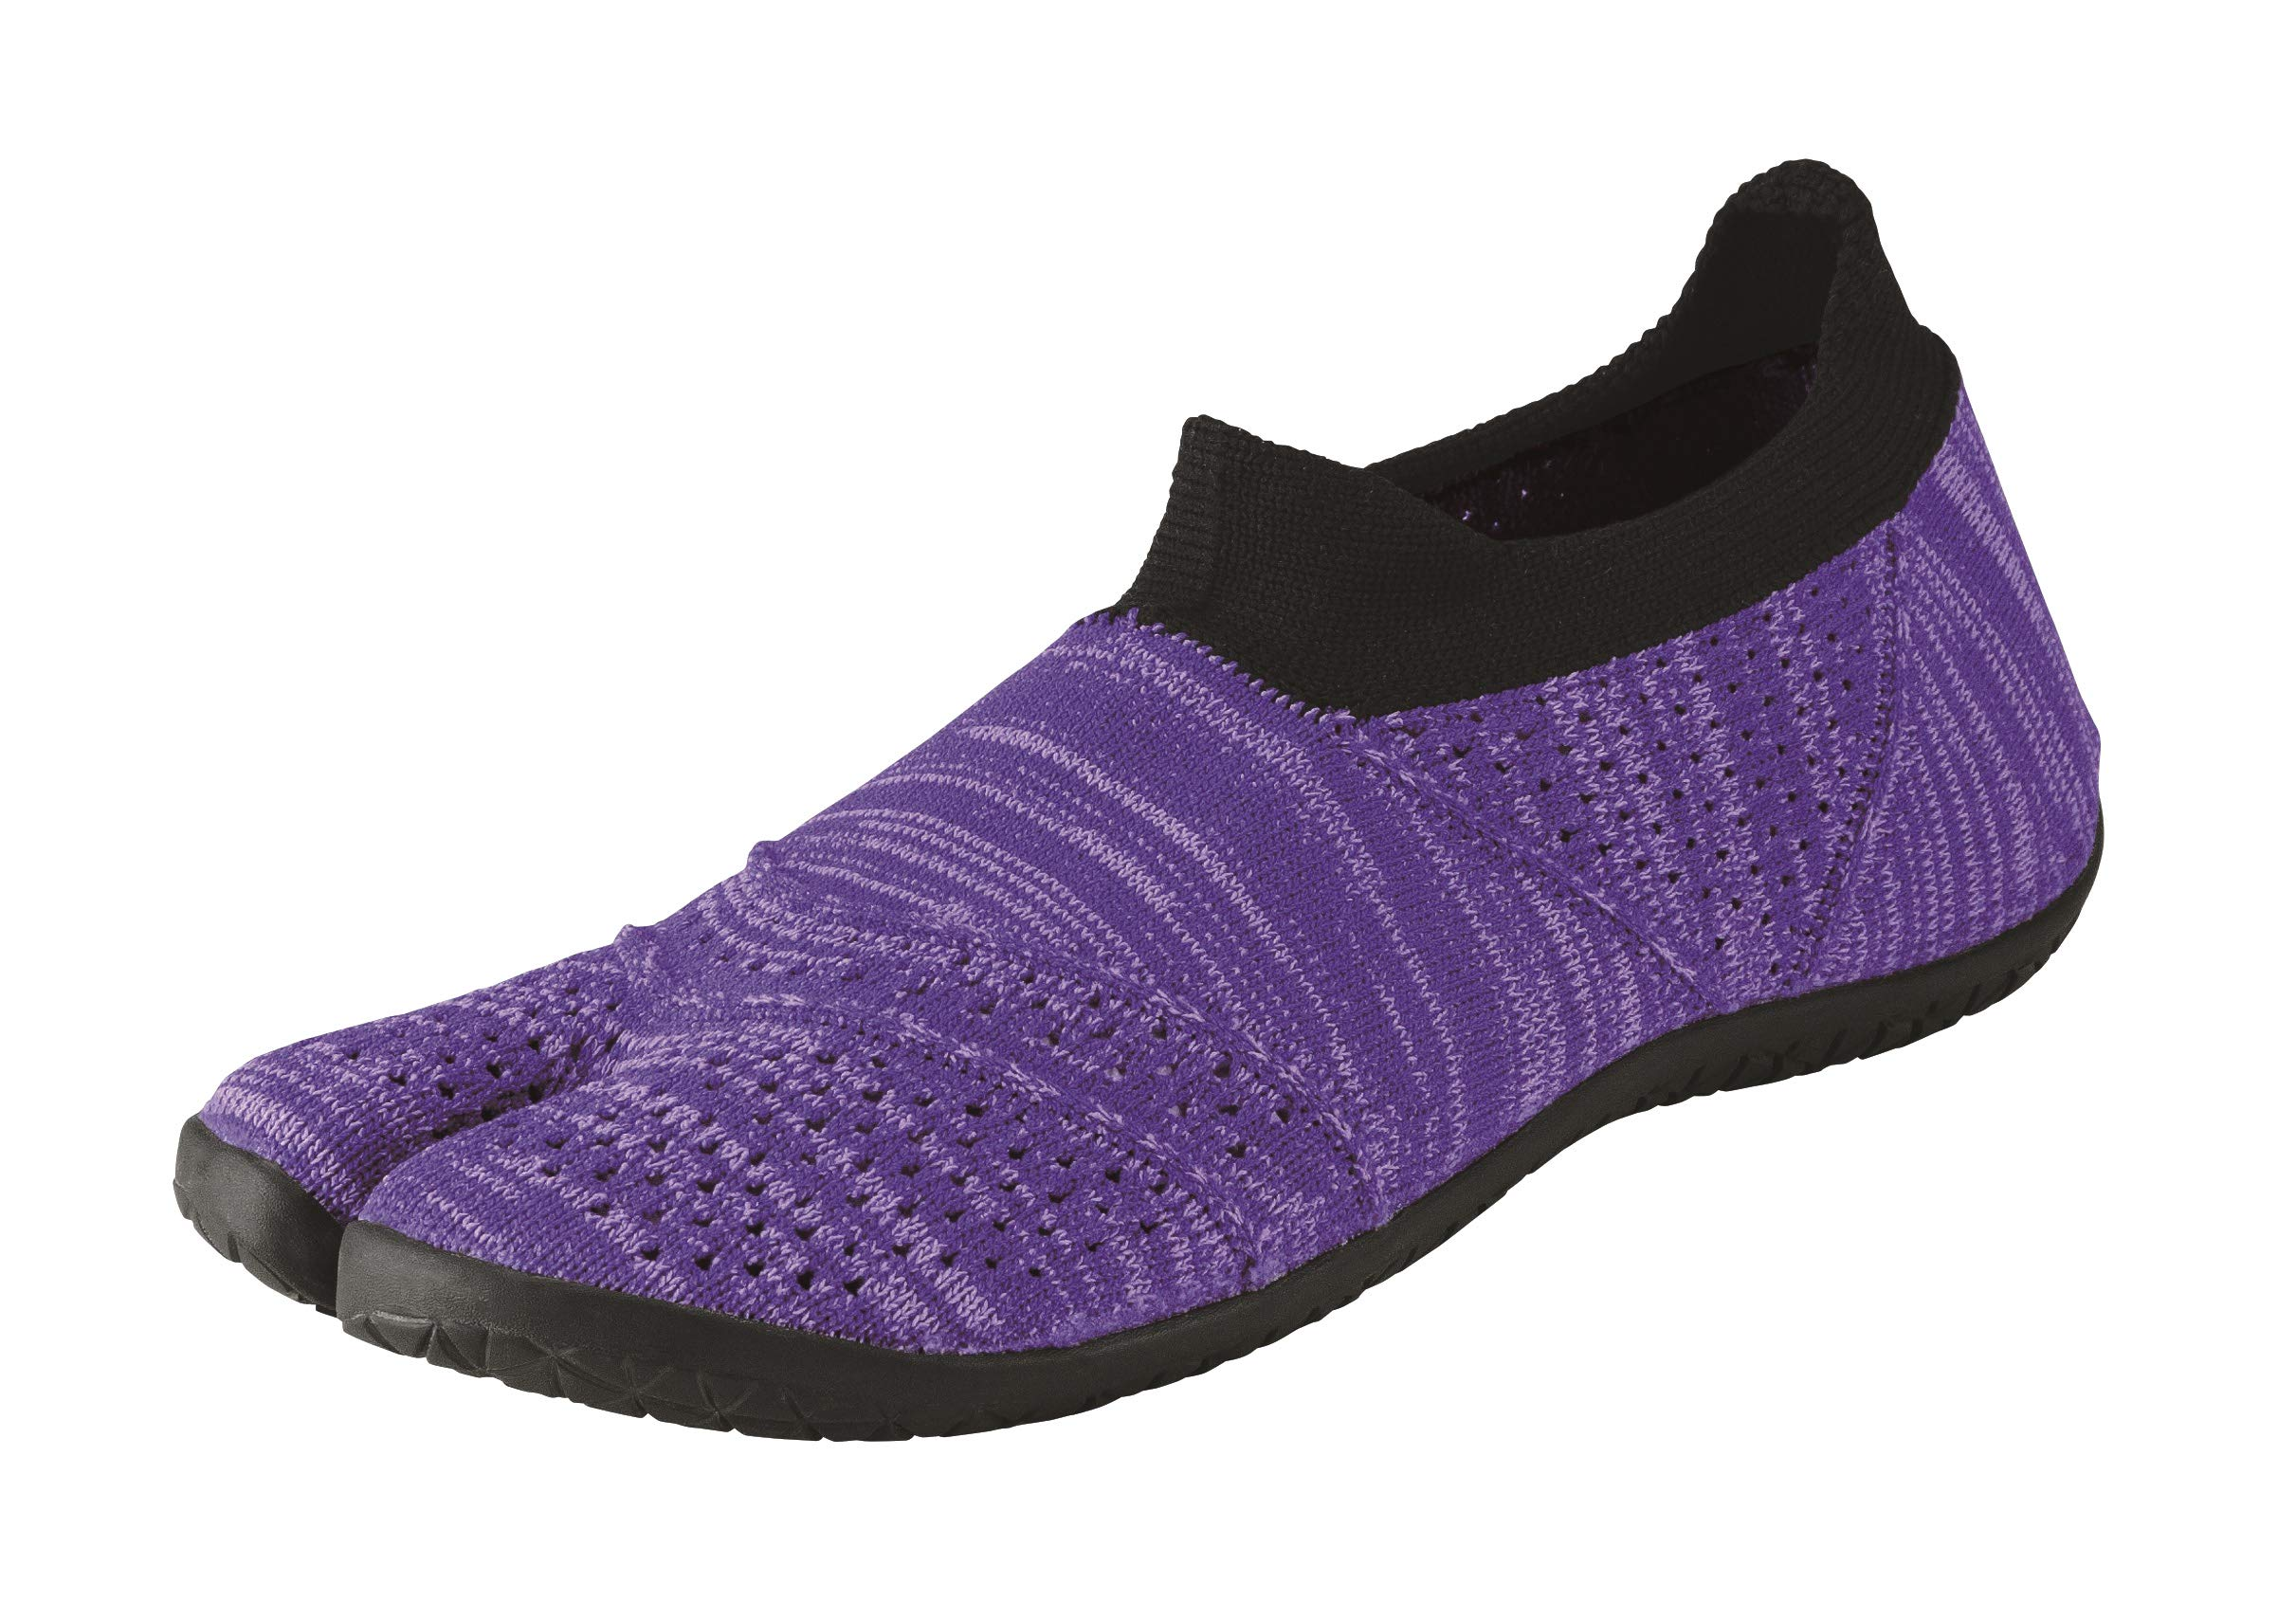 Marugo] hitoe PP235US5H Unisex Tabi Style, Minimalism Barefoot Core Training Shoes, Seamless Upper with Rubber Outsole. by Marugo